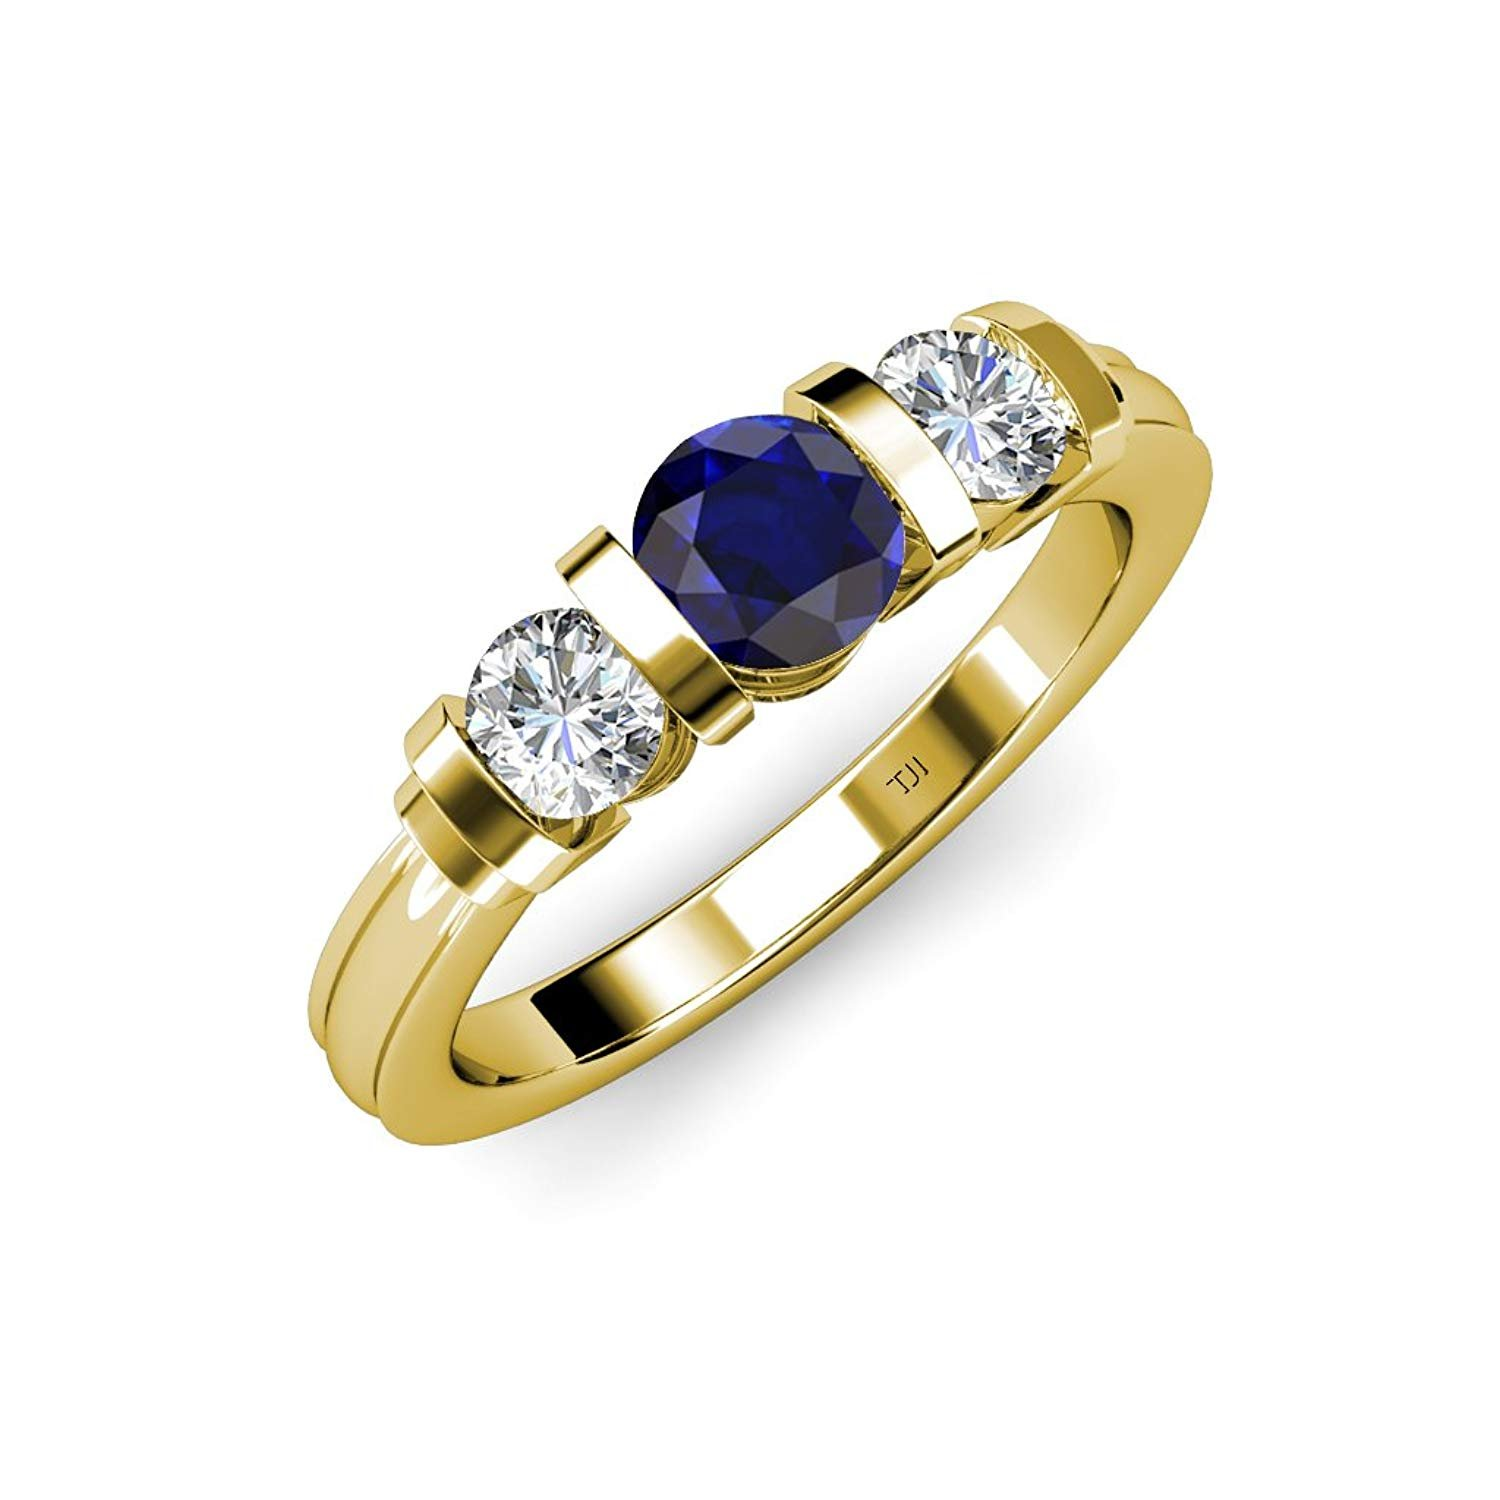 Blue Sapphire and Diamond (SI2-I1, G-H) Bar Set Three Stone Ring 1.13 ct tw in 14K Yellow Gold.size 6.5 by TriJewels